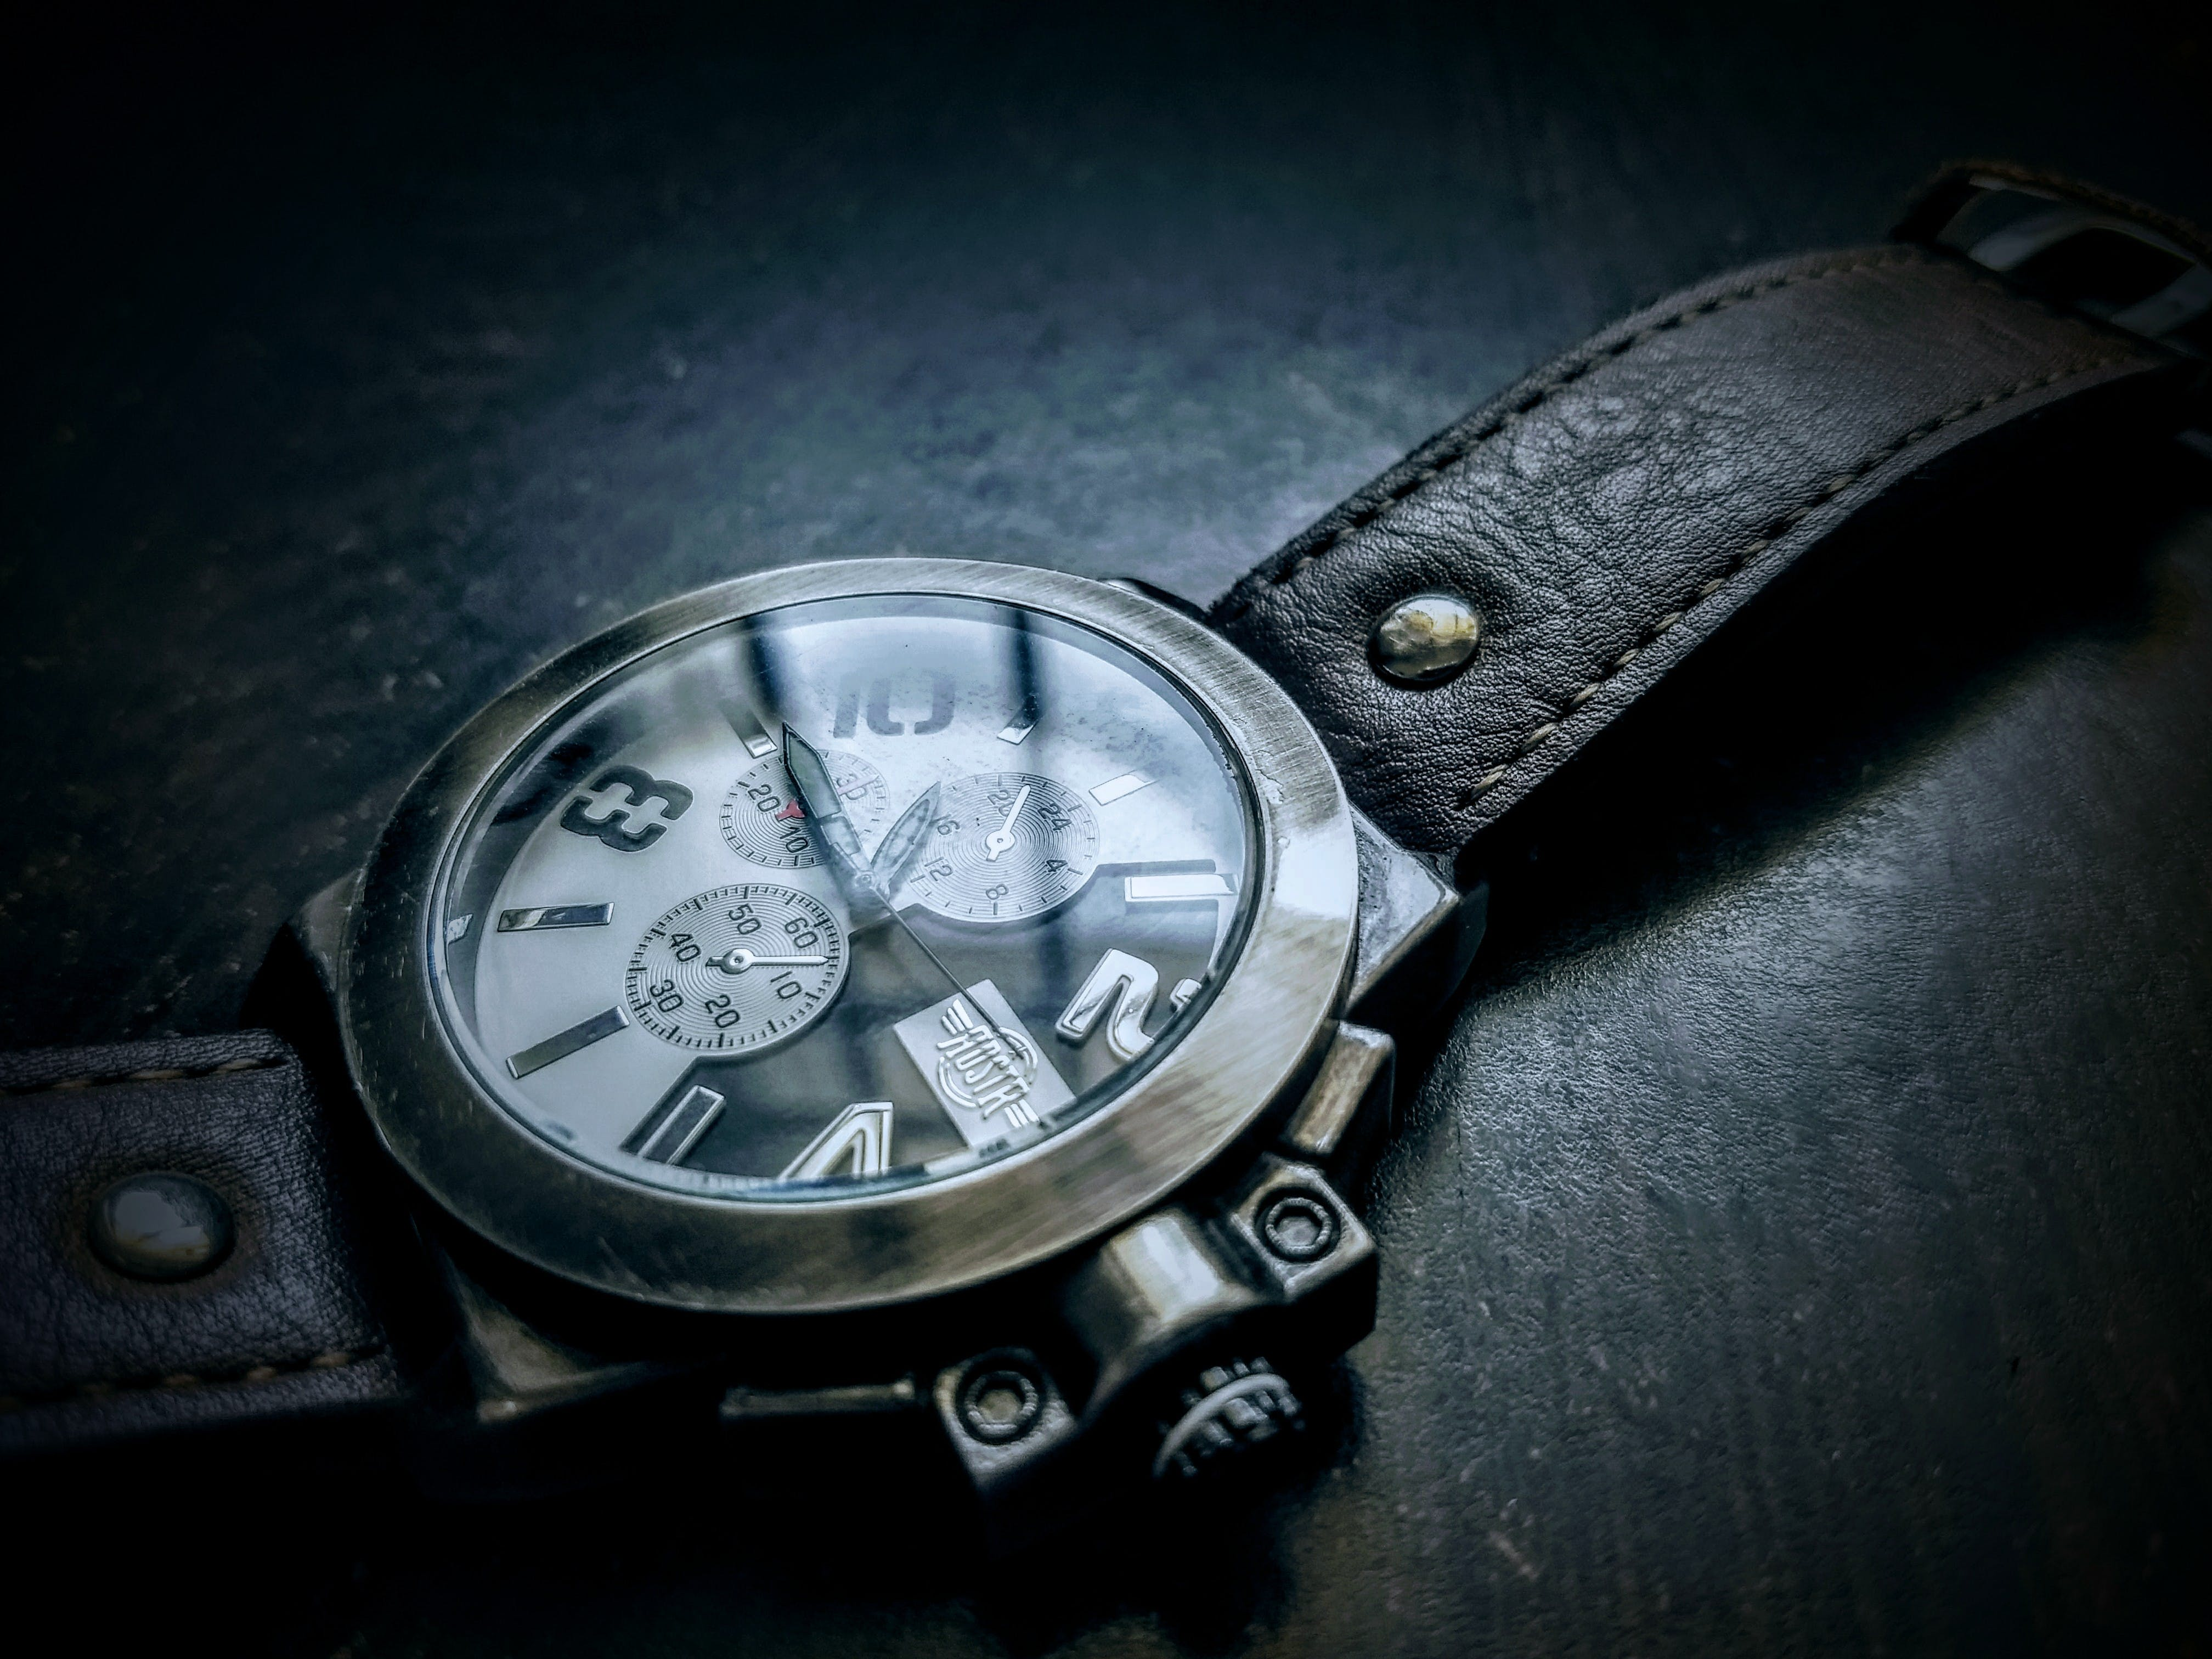 Free stock photo of #watch #roadster #photography #moto